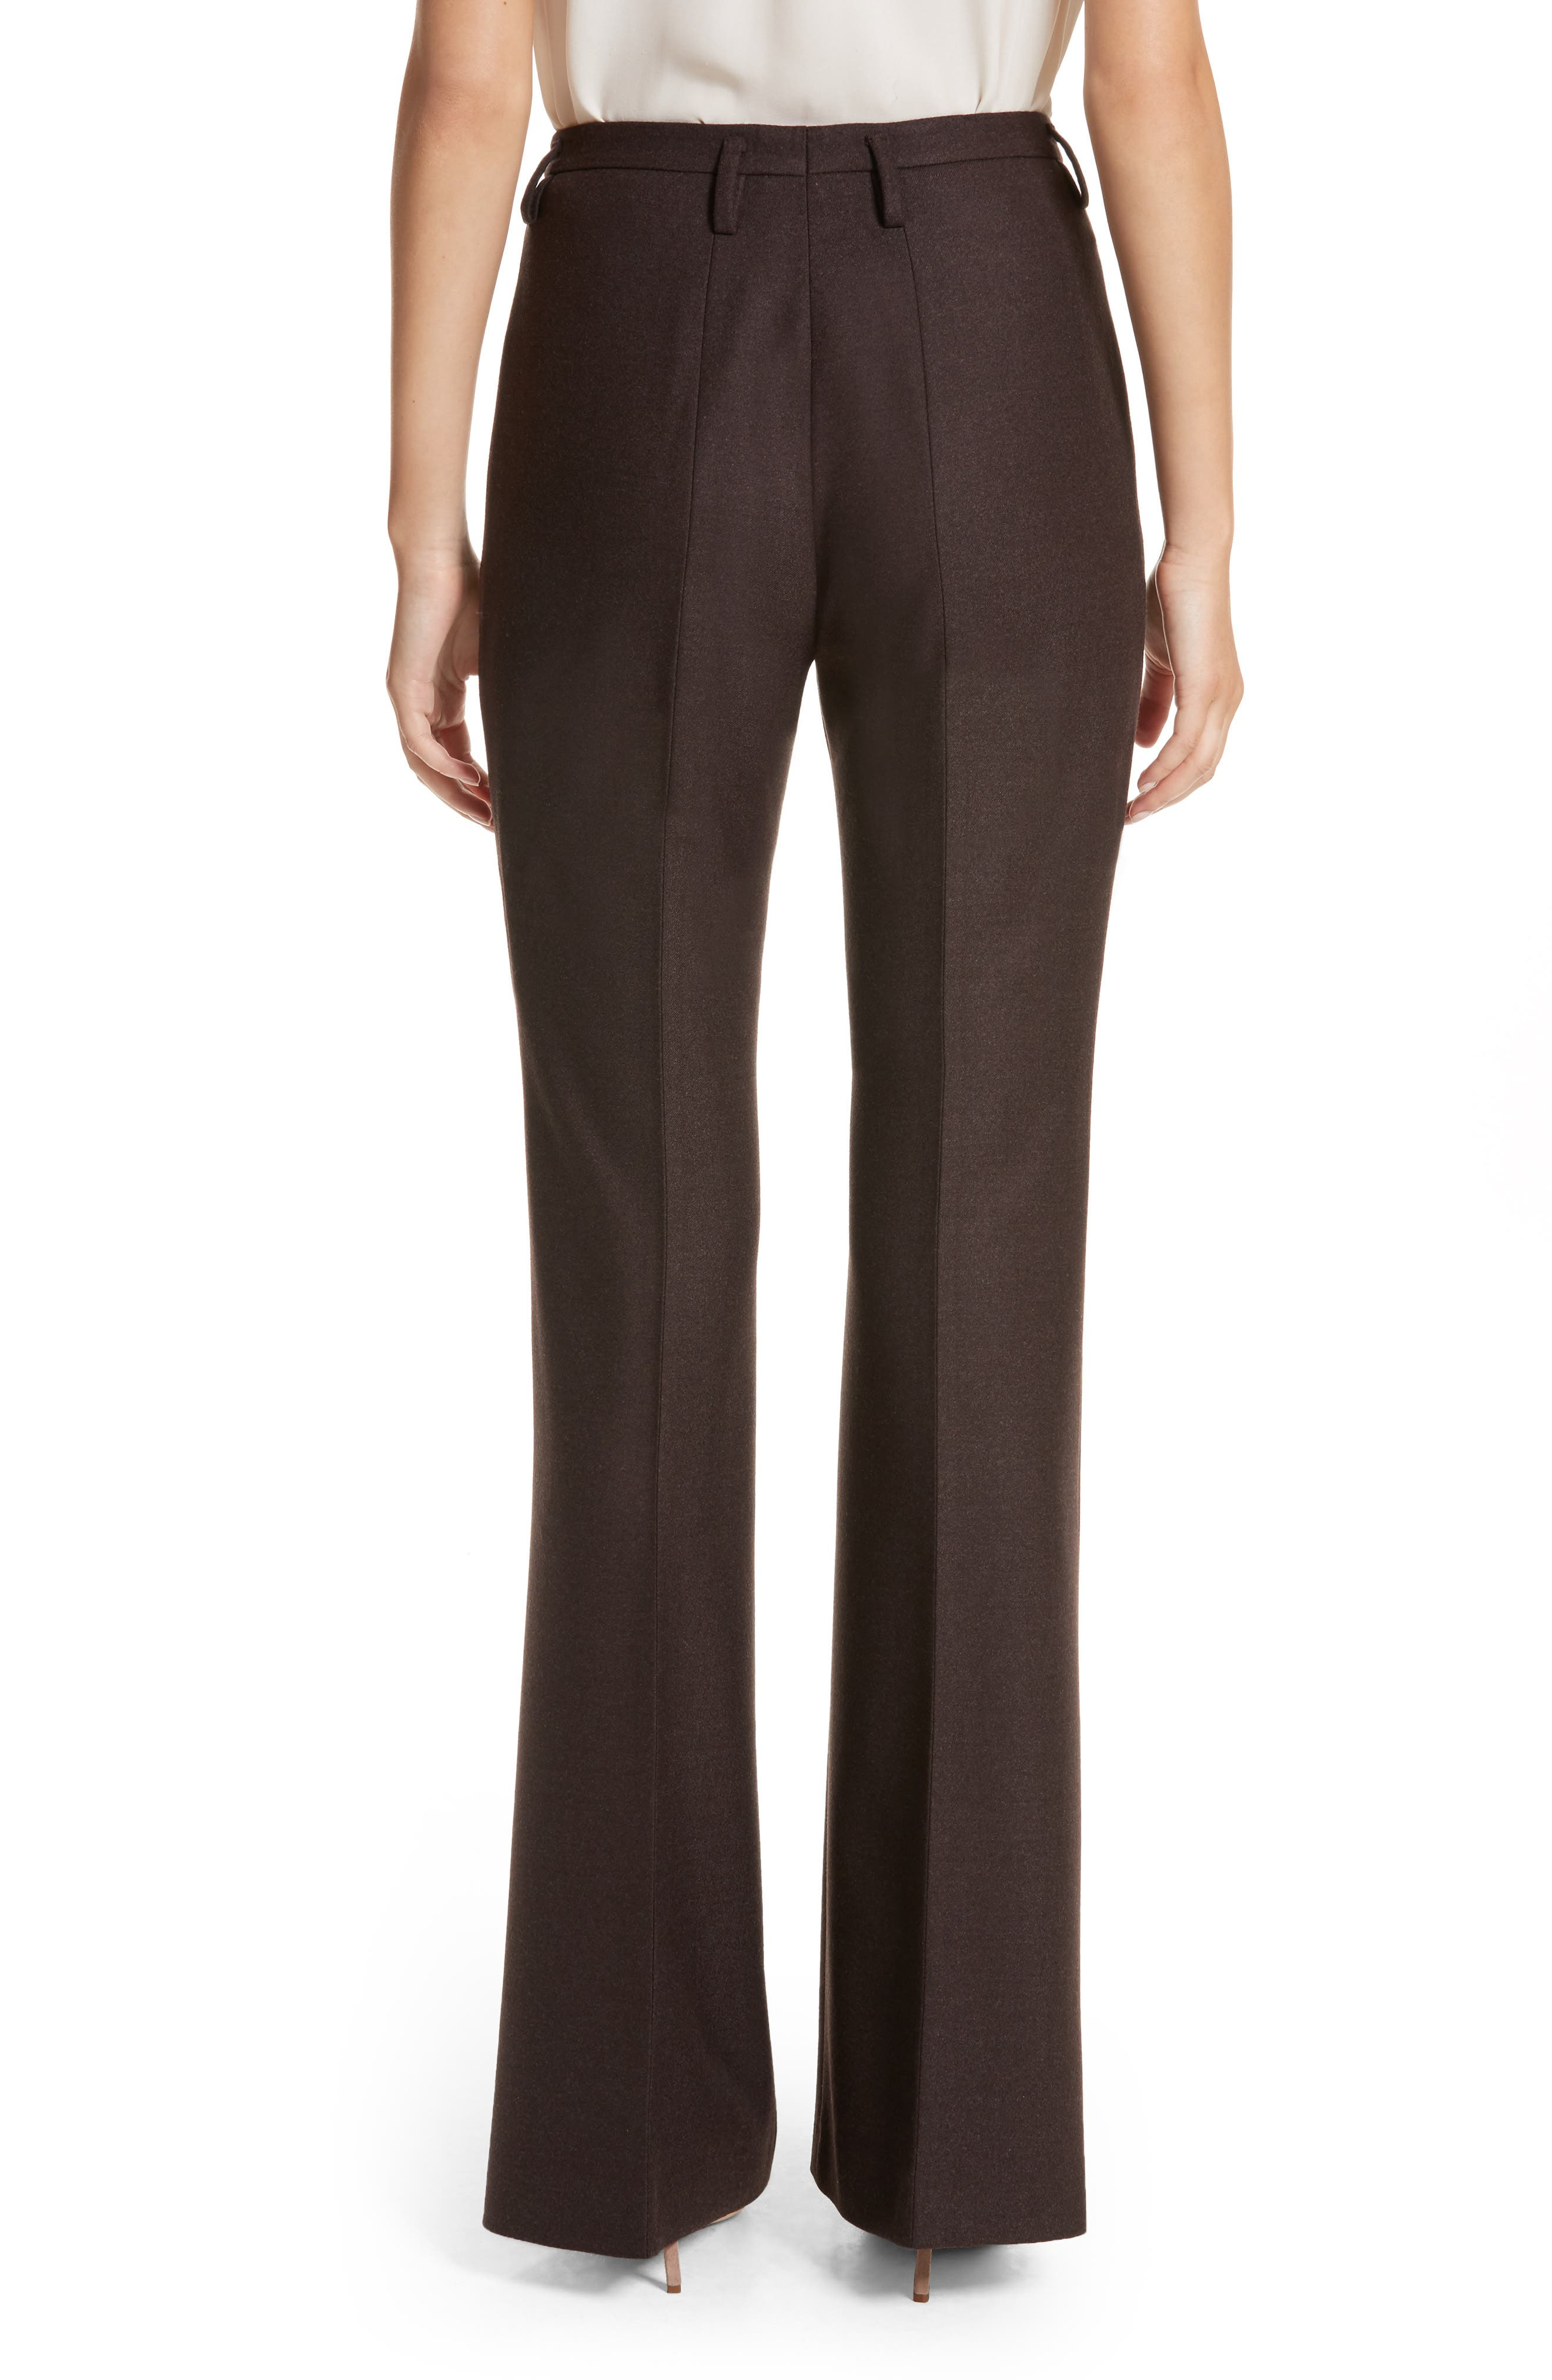 Farrah Stretch Wool Flare Pants,                             Alternate thumbnail 2, color,                             200